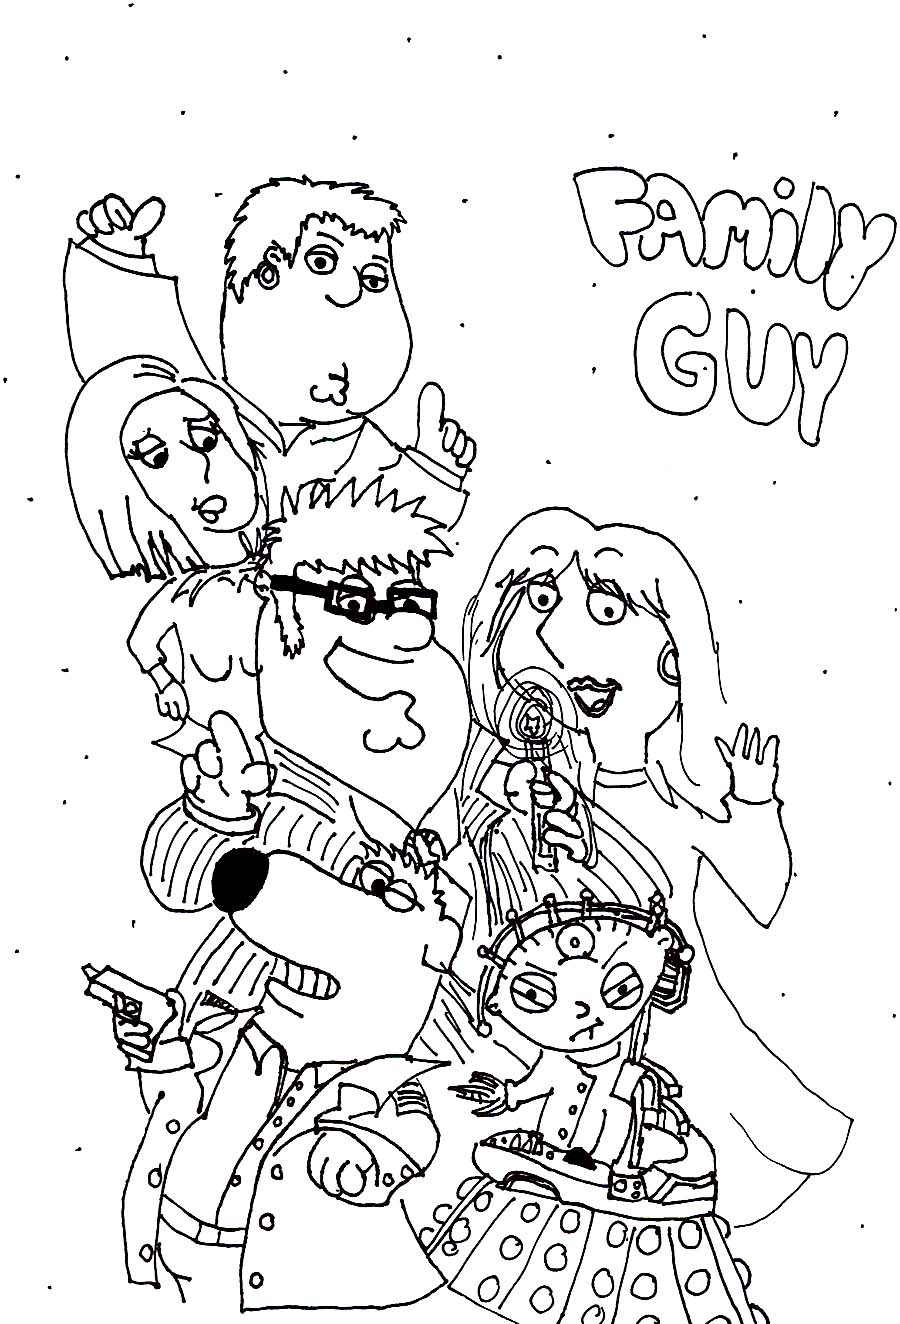 Uncategorized Family Guy Coloring Page printable family guy coloring pages me sheets